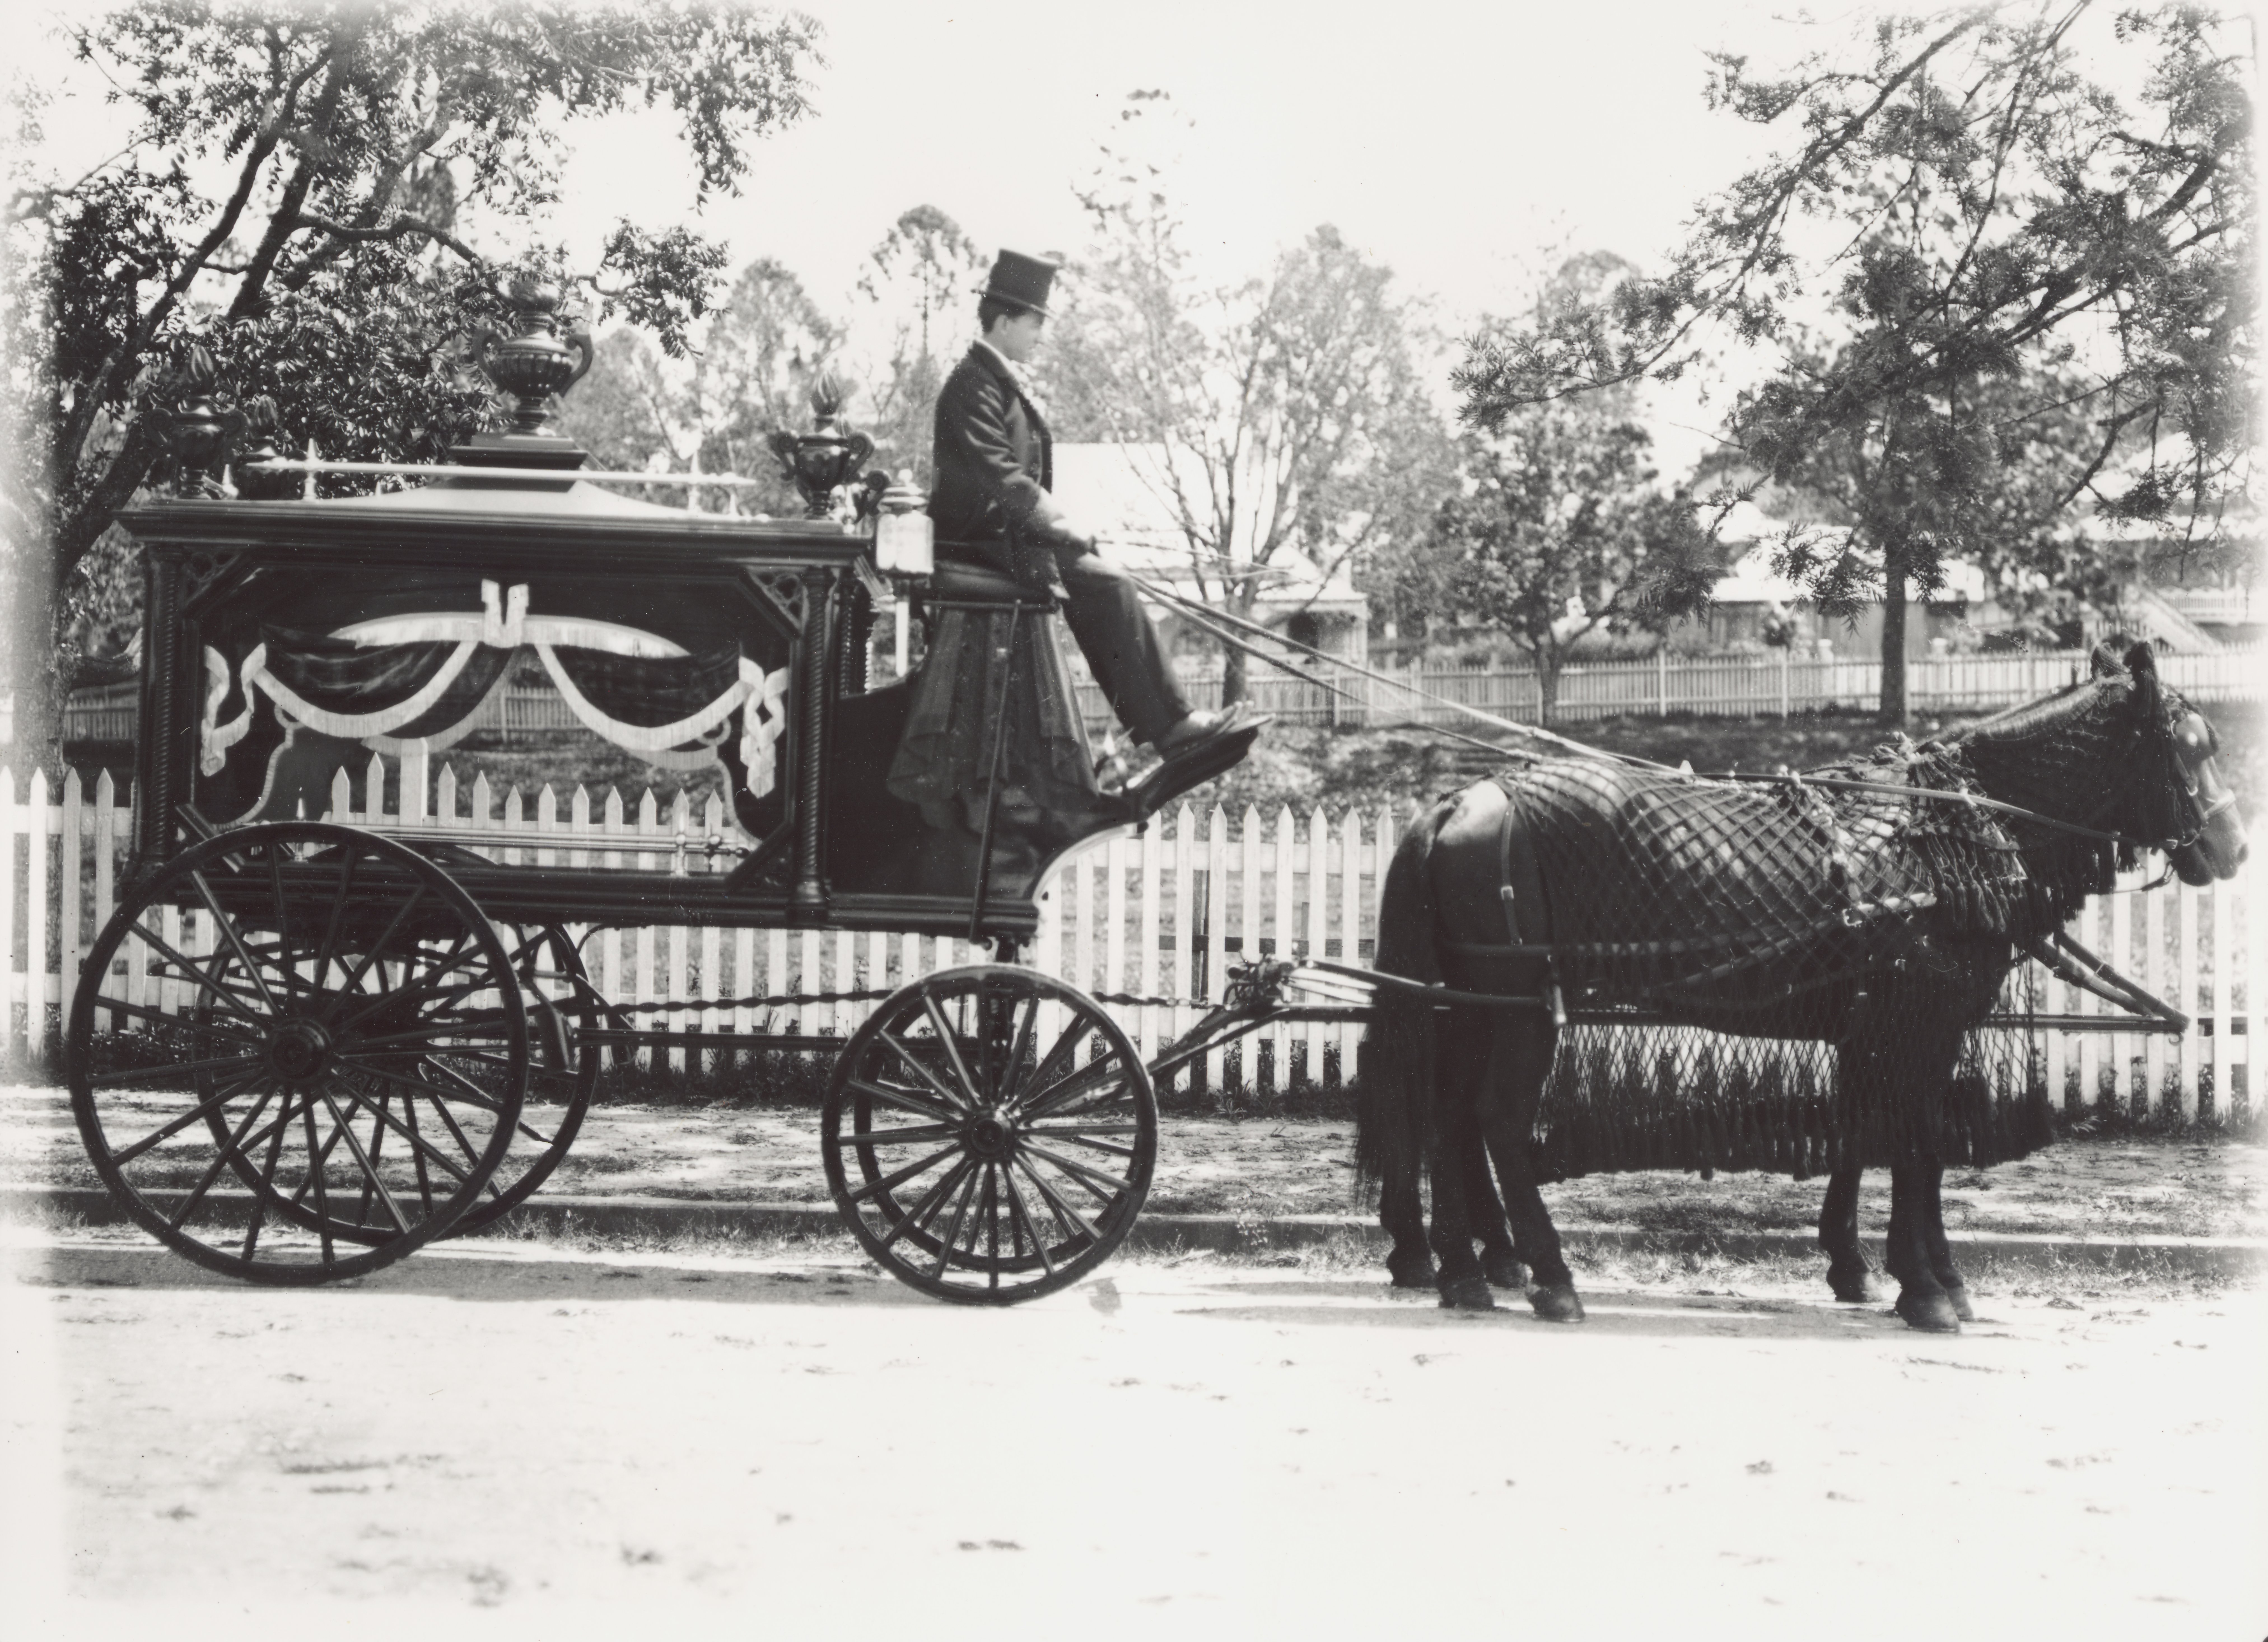 A E Roberts Carriage Works made beautifully finished vehicles such as this hearse. The hearse, the driver and the horses were immaculately turned out. Sadly, most people would ride in a salubrious vehicle only once, and it was a ride they would not remember.